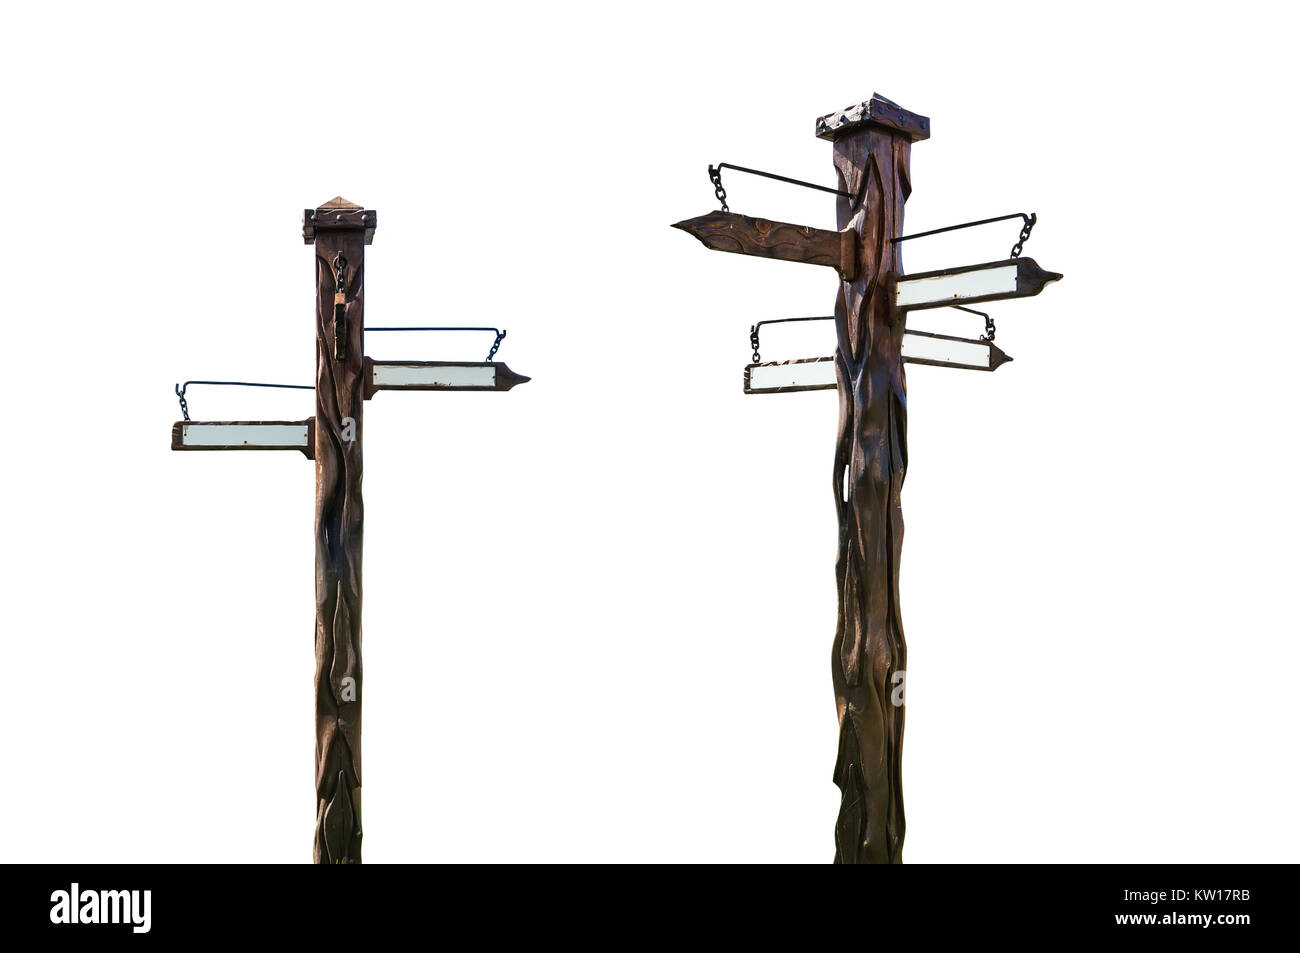 Popular Cartoon Wood Direction Signs Stock Photos & Cartoon Wood Direction  KO72